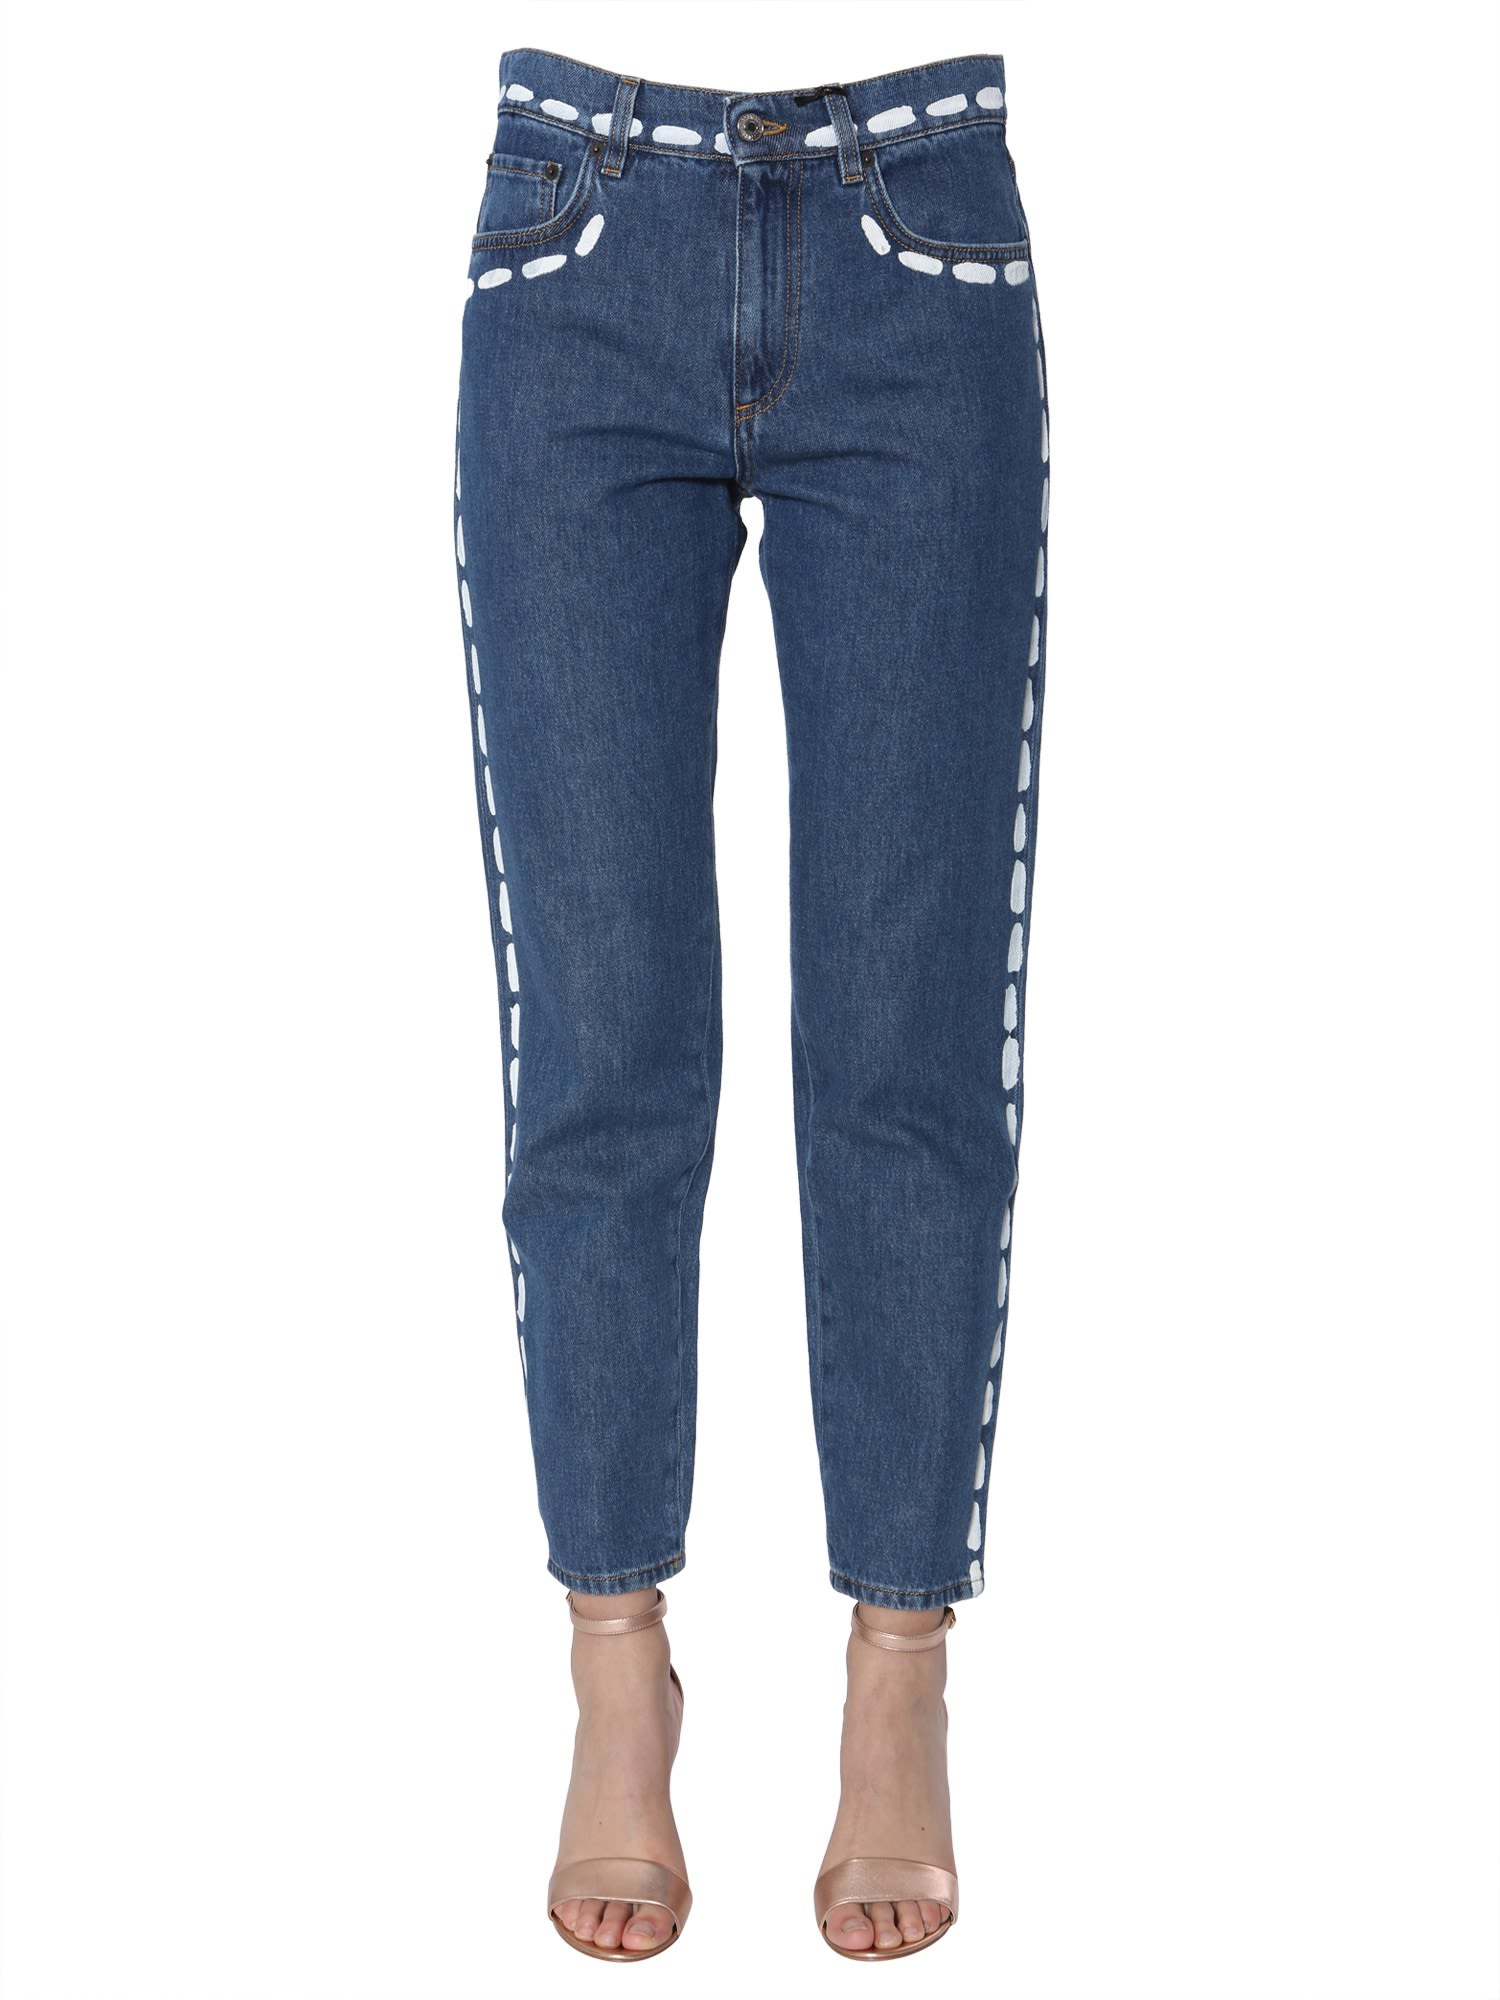 Moschino Jeans With Brushed Stitches